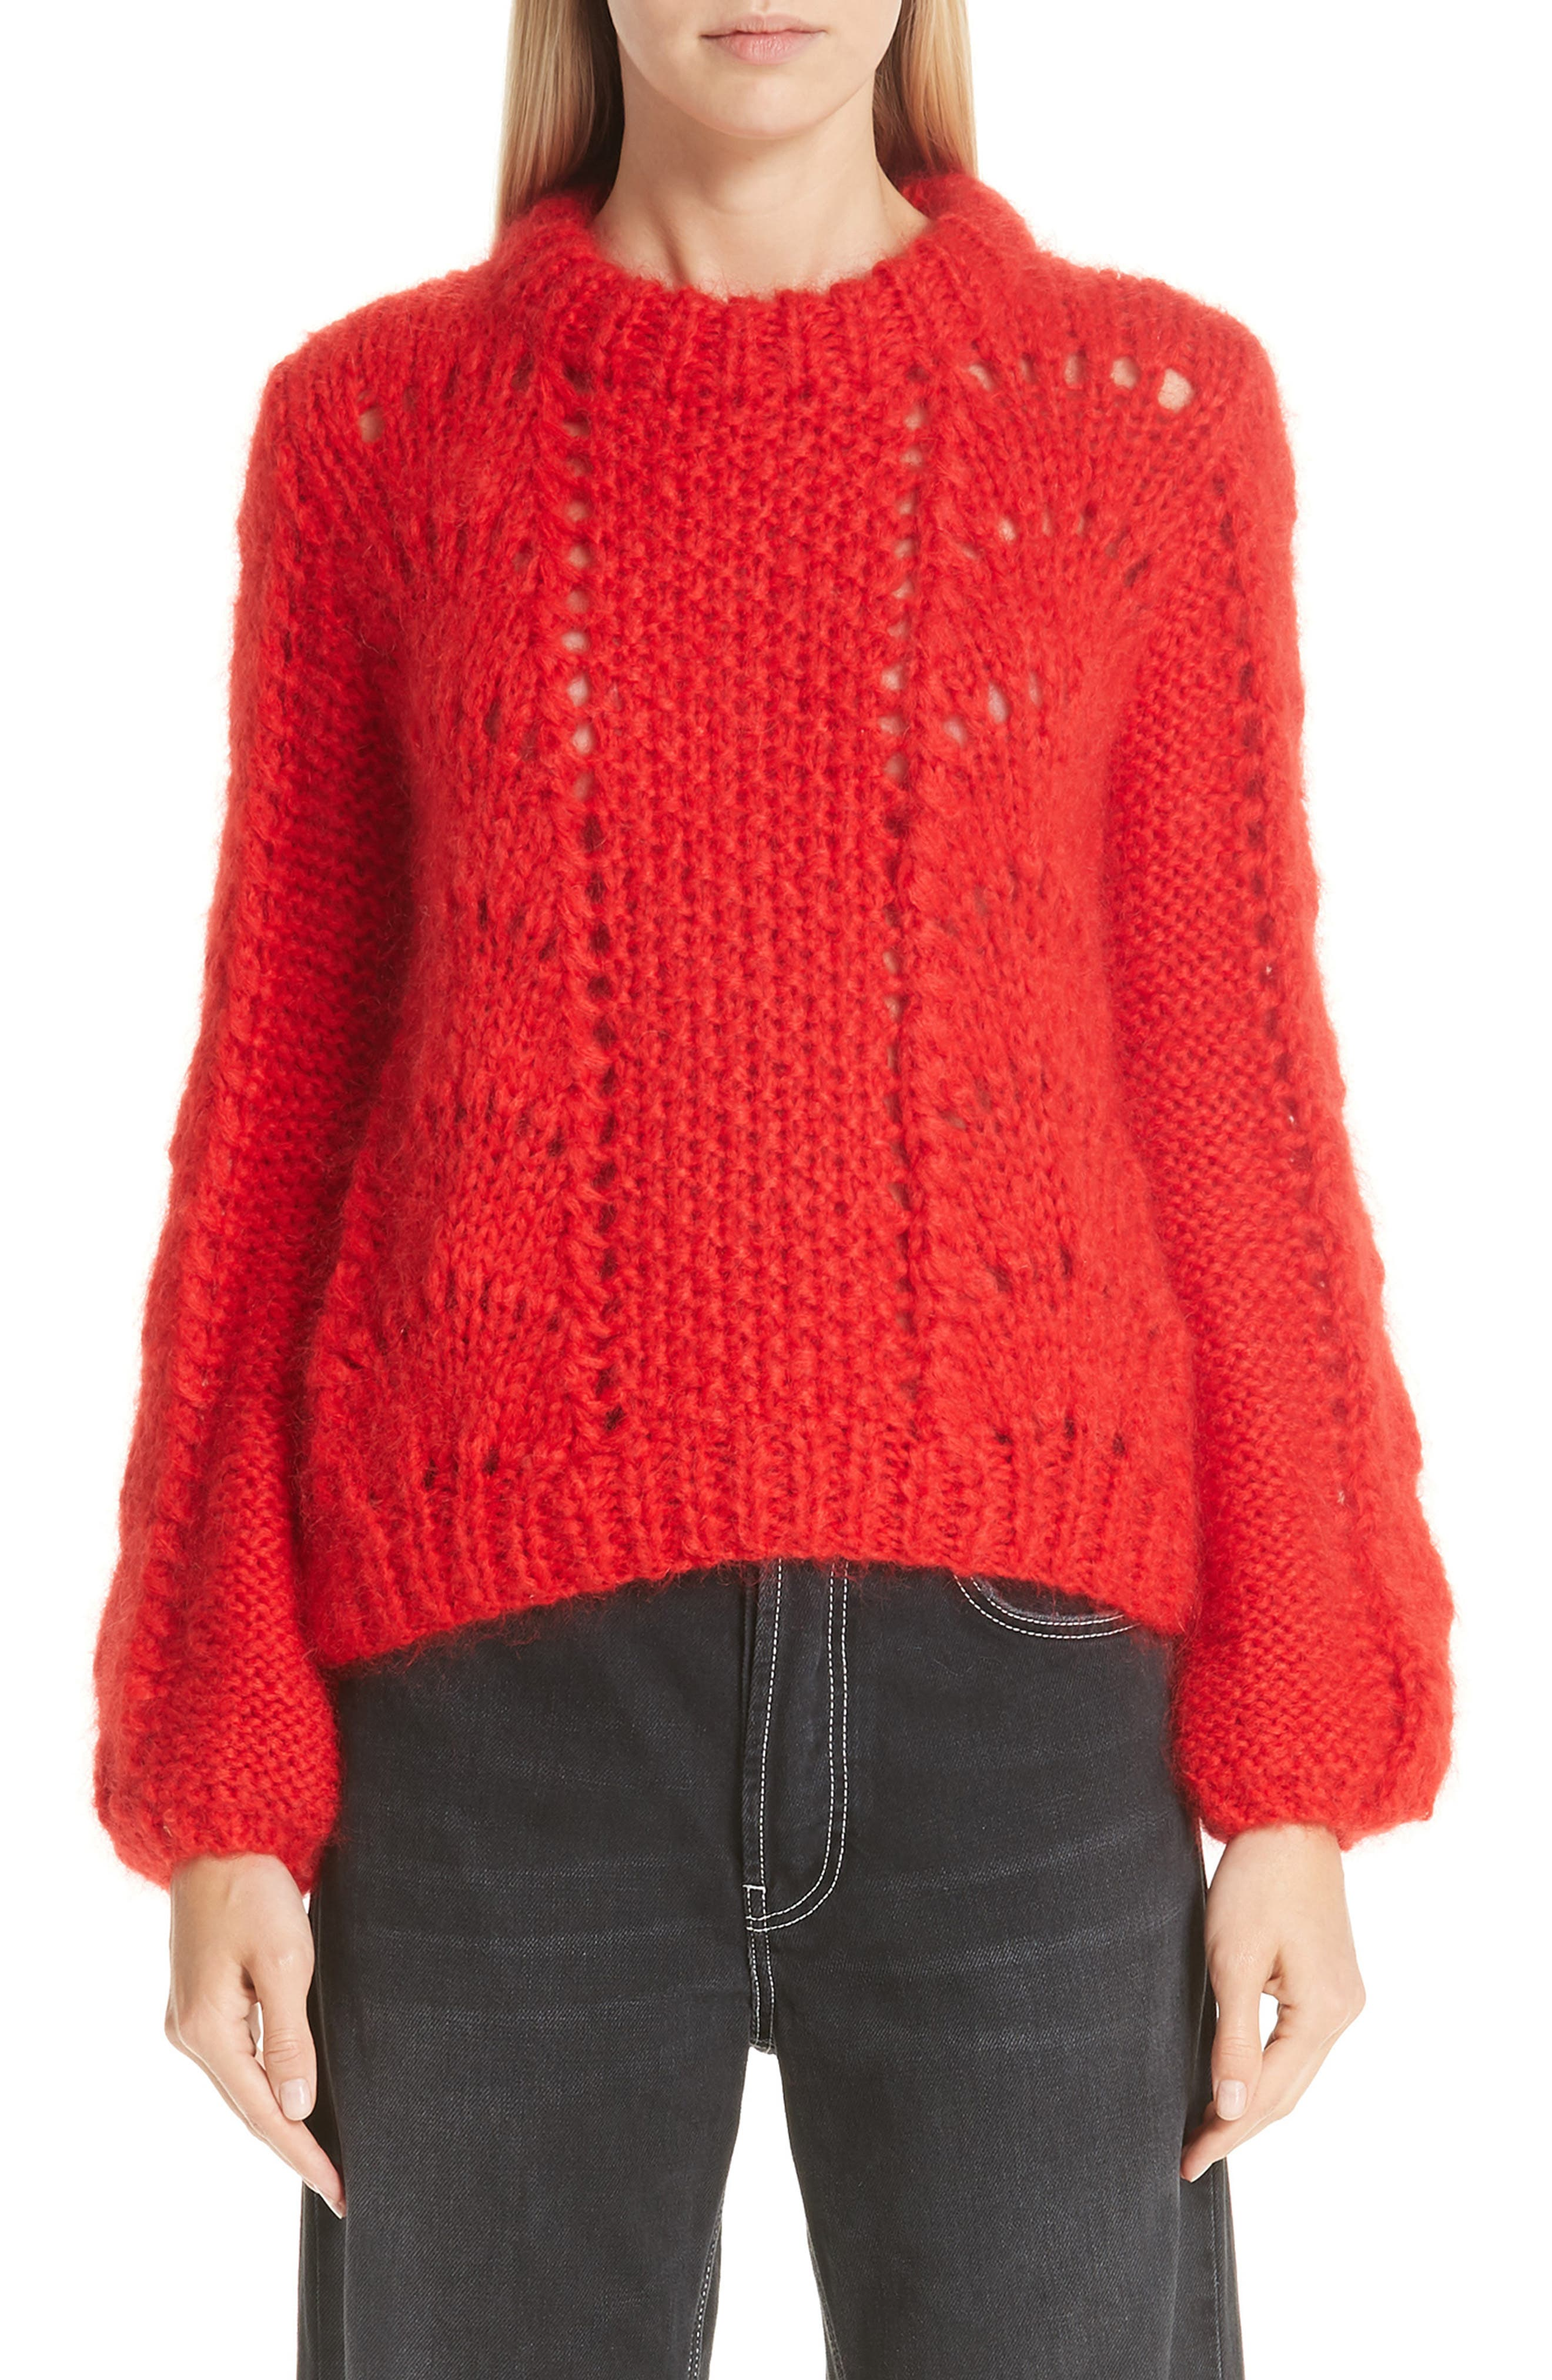 GANNI,                             Mohair & Wool Sweater,                             Main thumbnail 1, color,                             FIERY RED 403